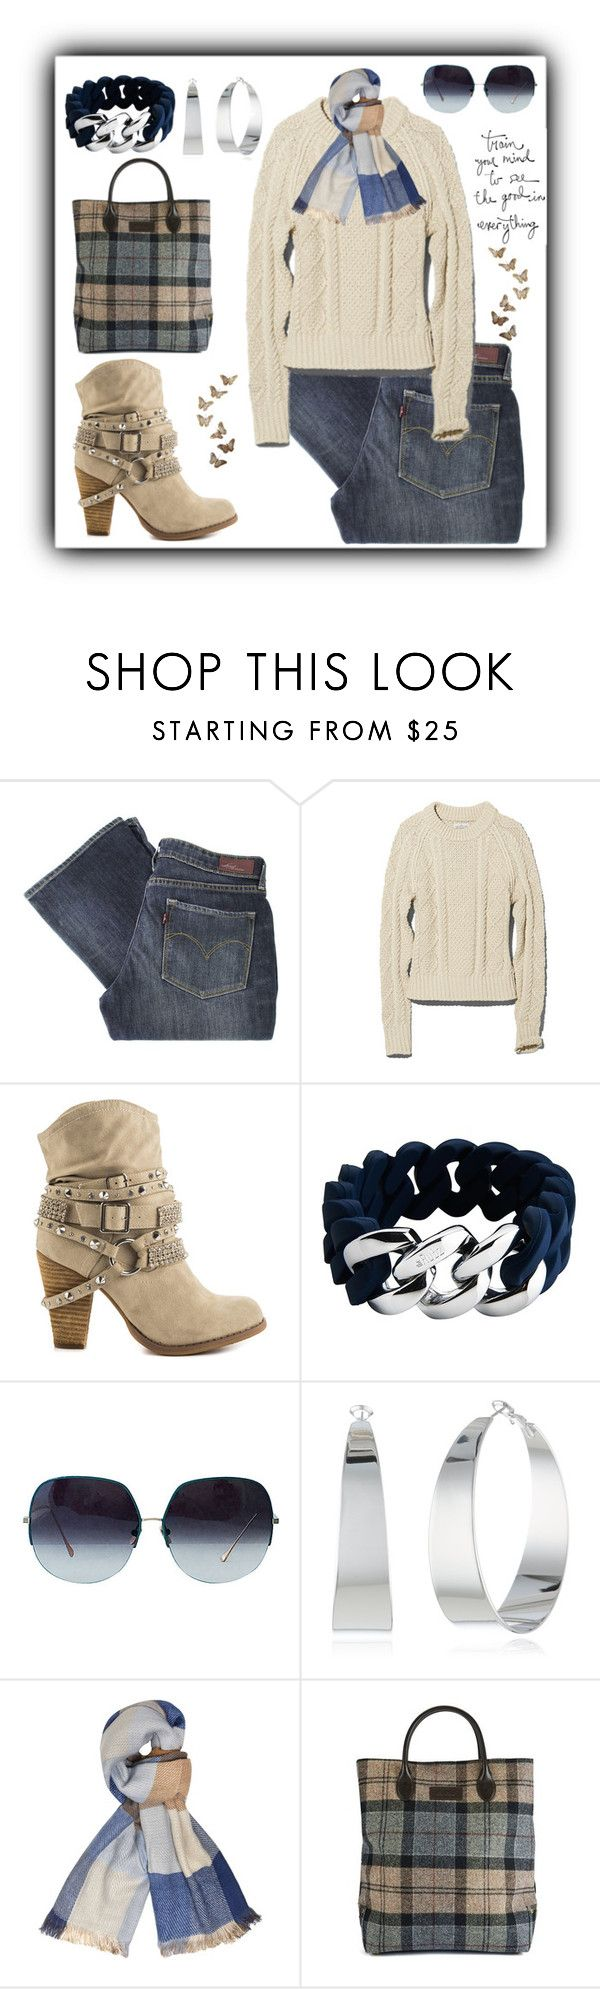 """Untitled #670"" by gallant81 ❤ liked on Polyvore featuring Levi's, Not Rated, The Rubz, Vince Camuto, Dorothy Perkins and Barbour"